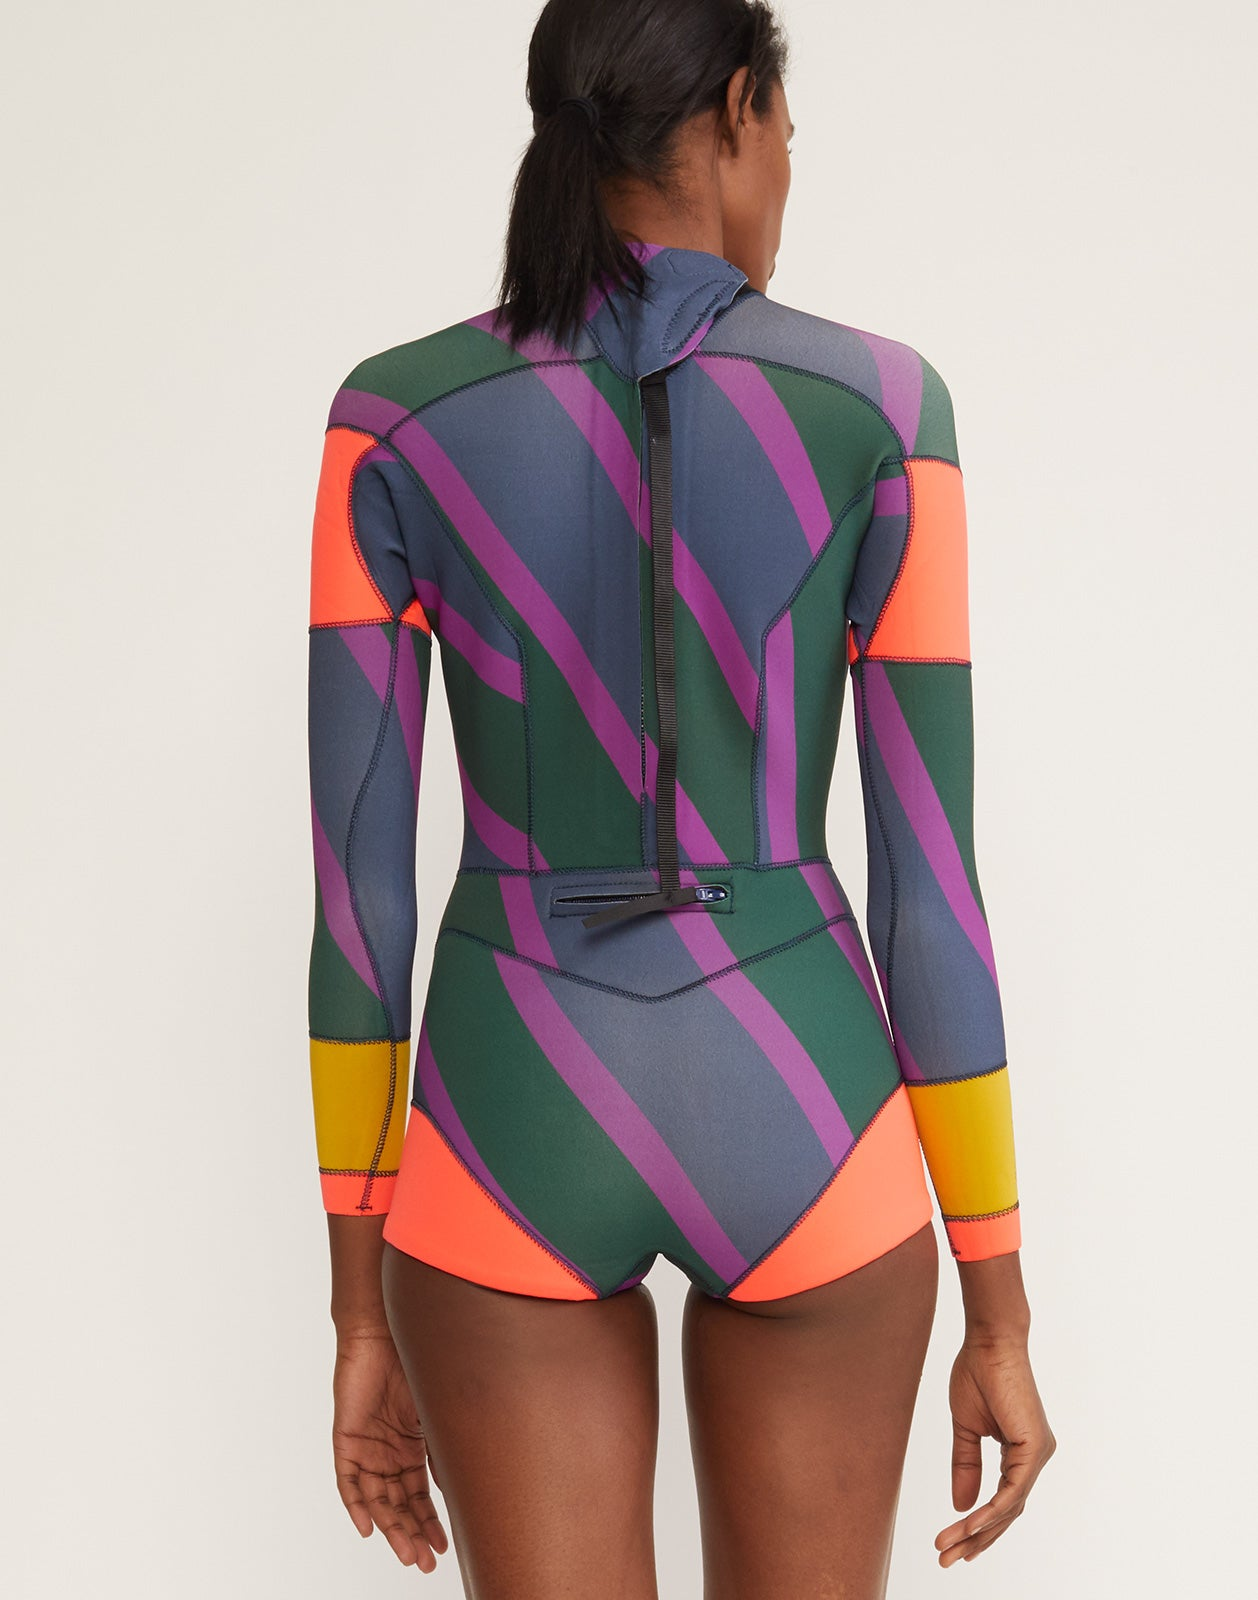 Back view of Zig Zag stripe wetsuit in brightly printed neoprene.